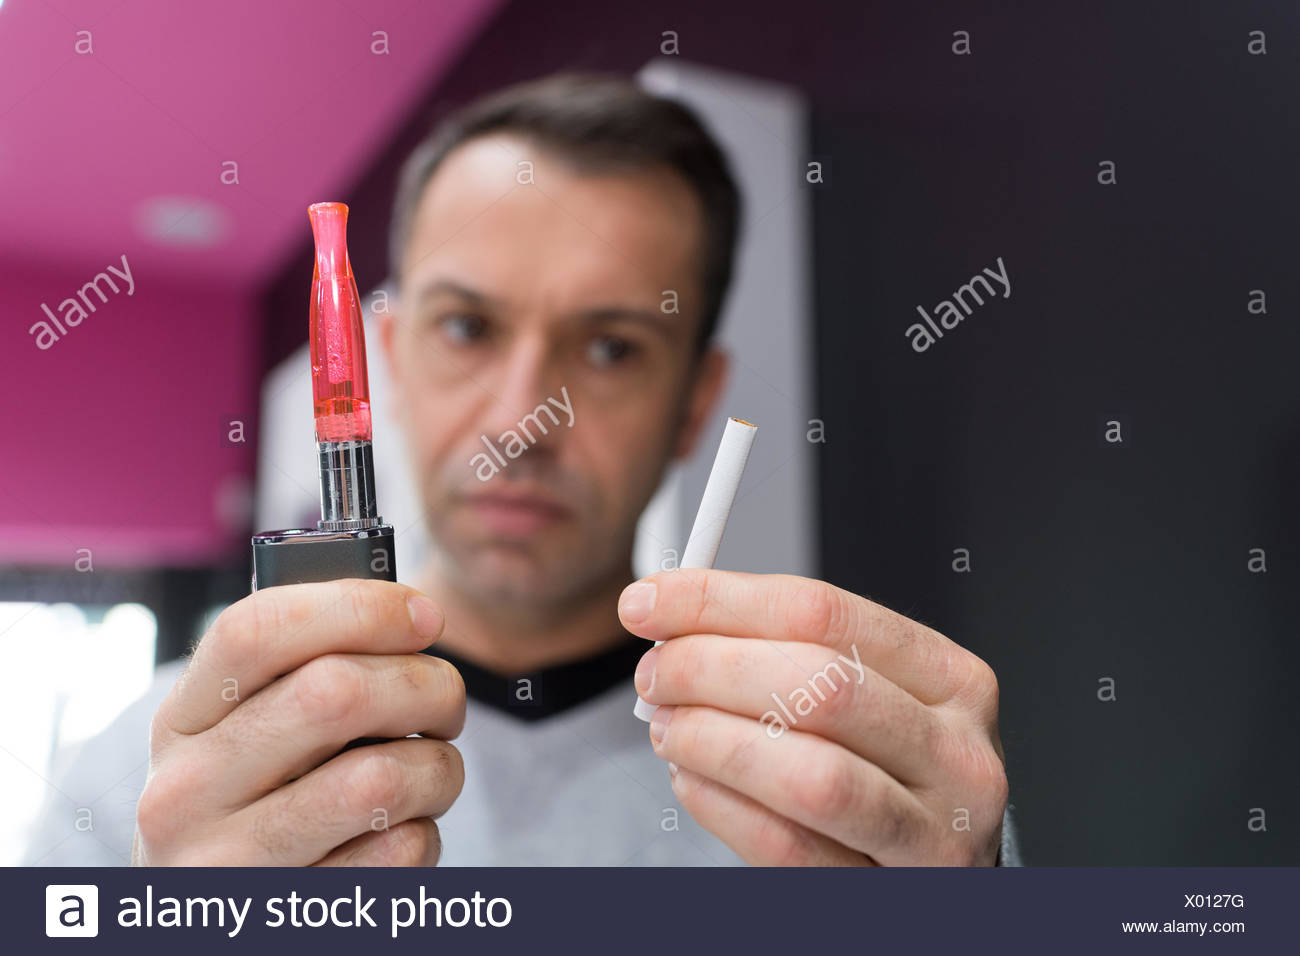 vape and cigarettes - Stock Image